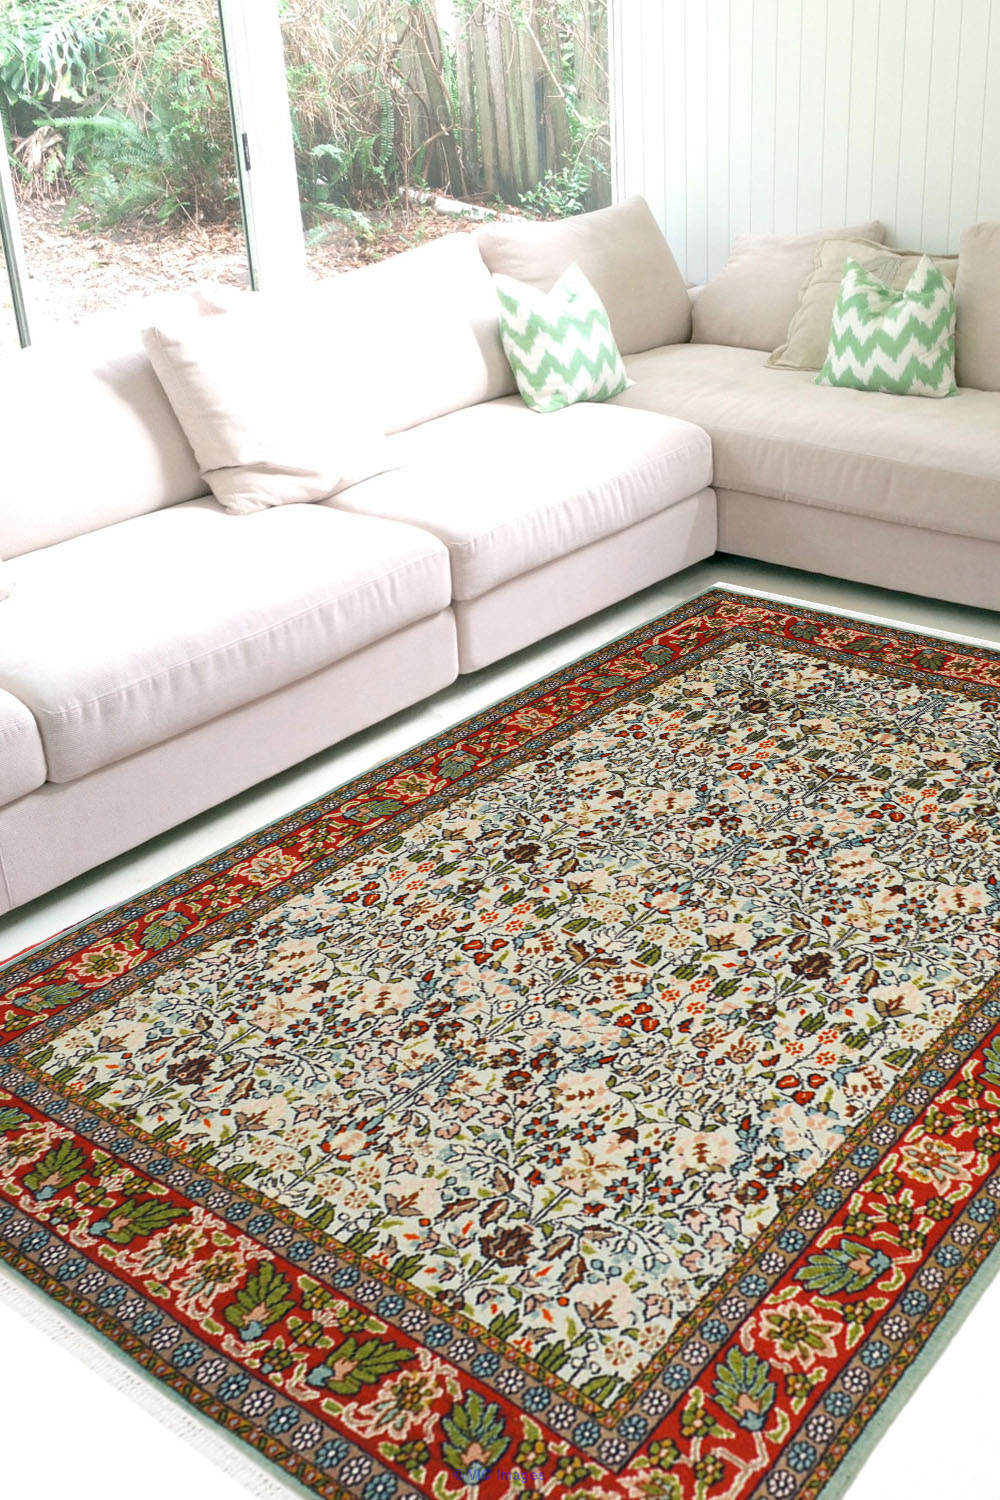 Shop Afghan Rugs Online at Yak Carpet  Calgary, Alberta, Canada Classifieds